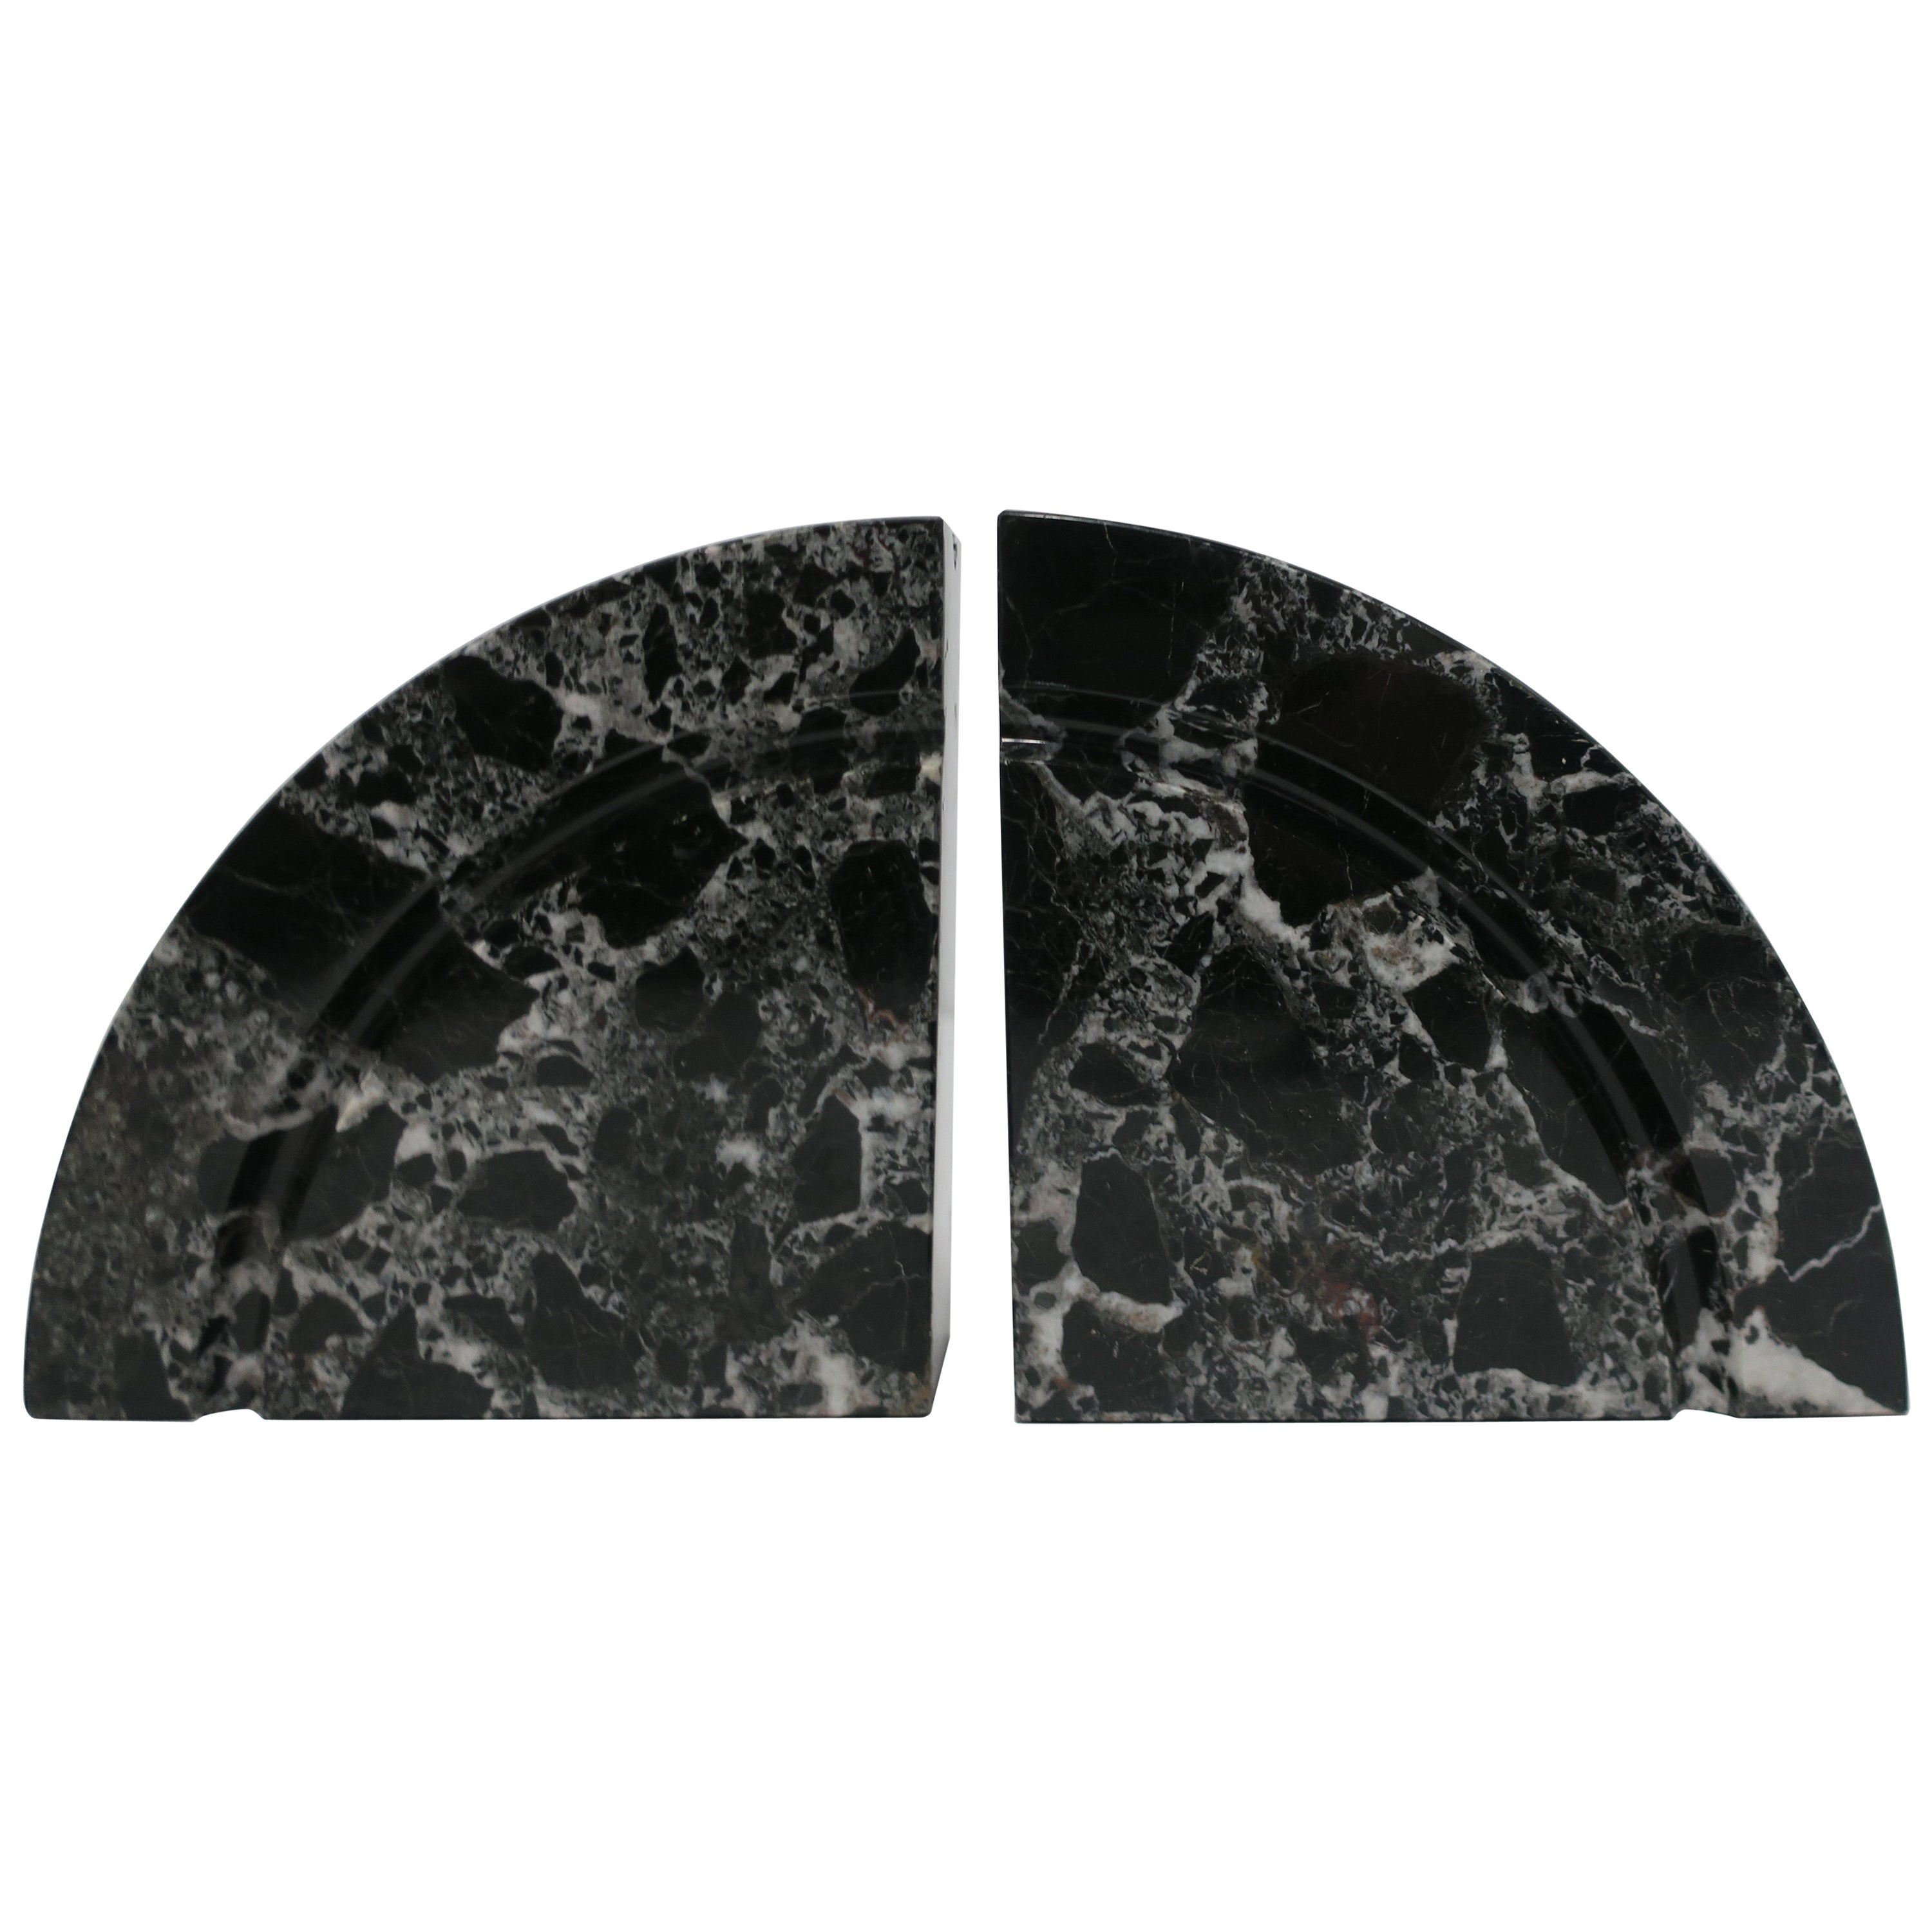 Pair Modern Black and White Marble Bookends, ca. 1970s